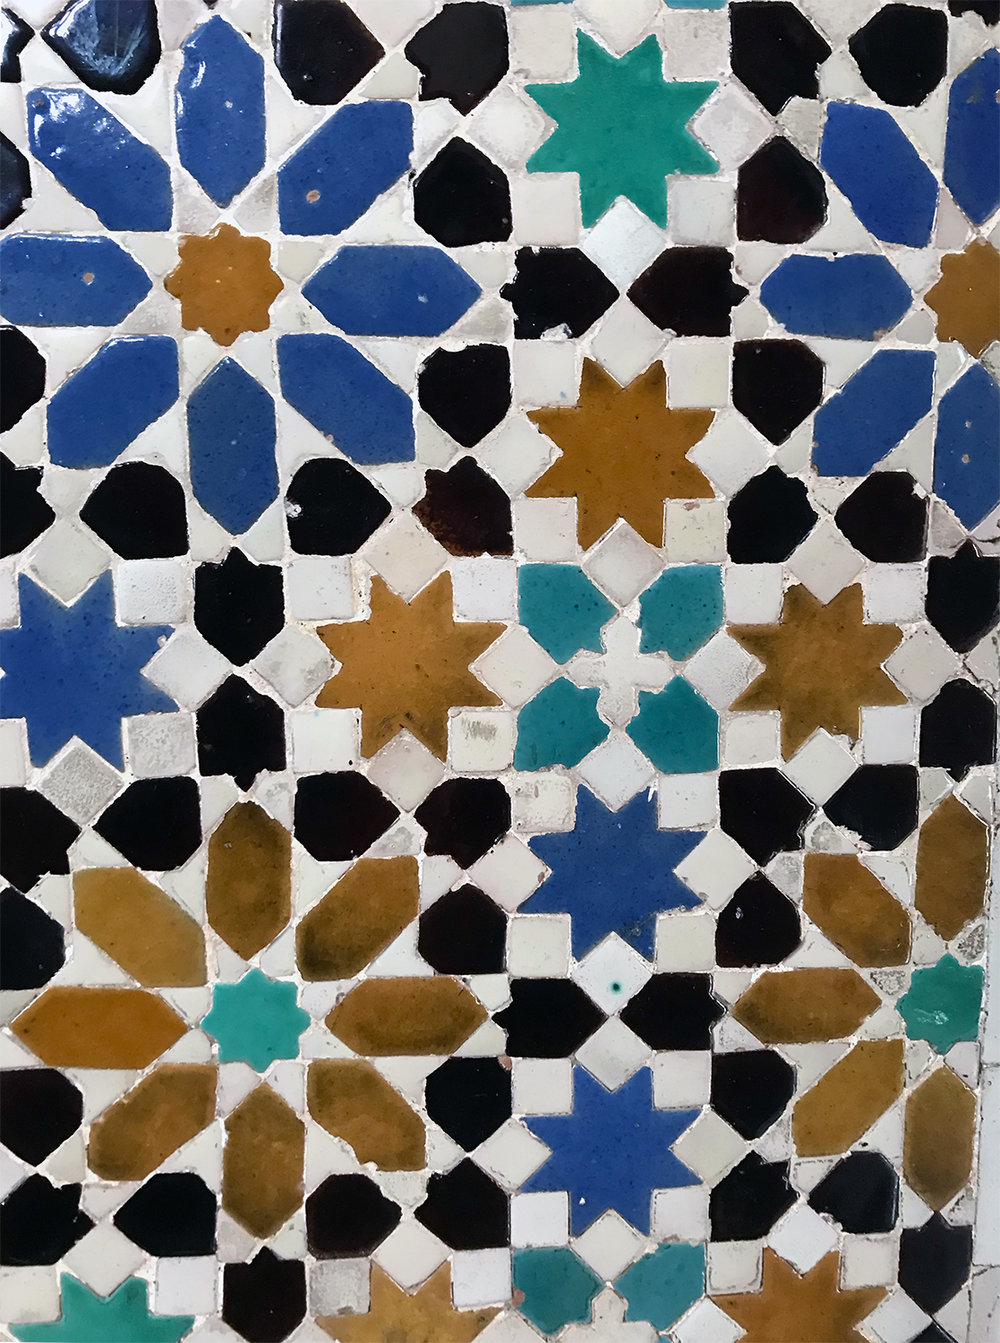 The colors and shapes were mesmerizing.  Each piece is cut by hand and pieced together by a tiler.